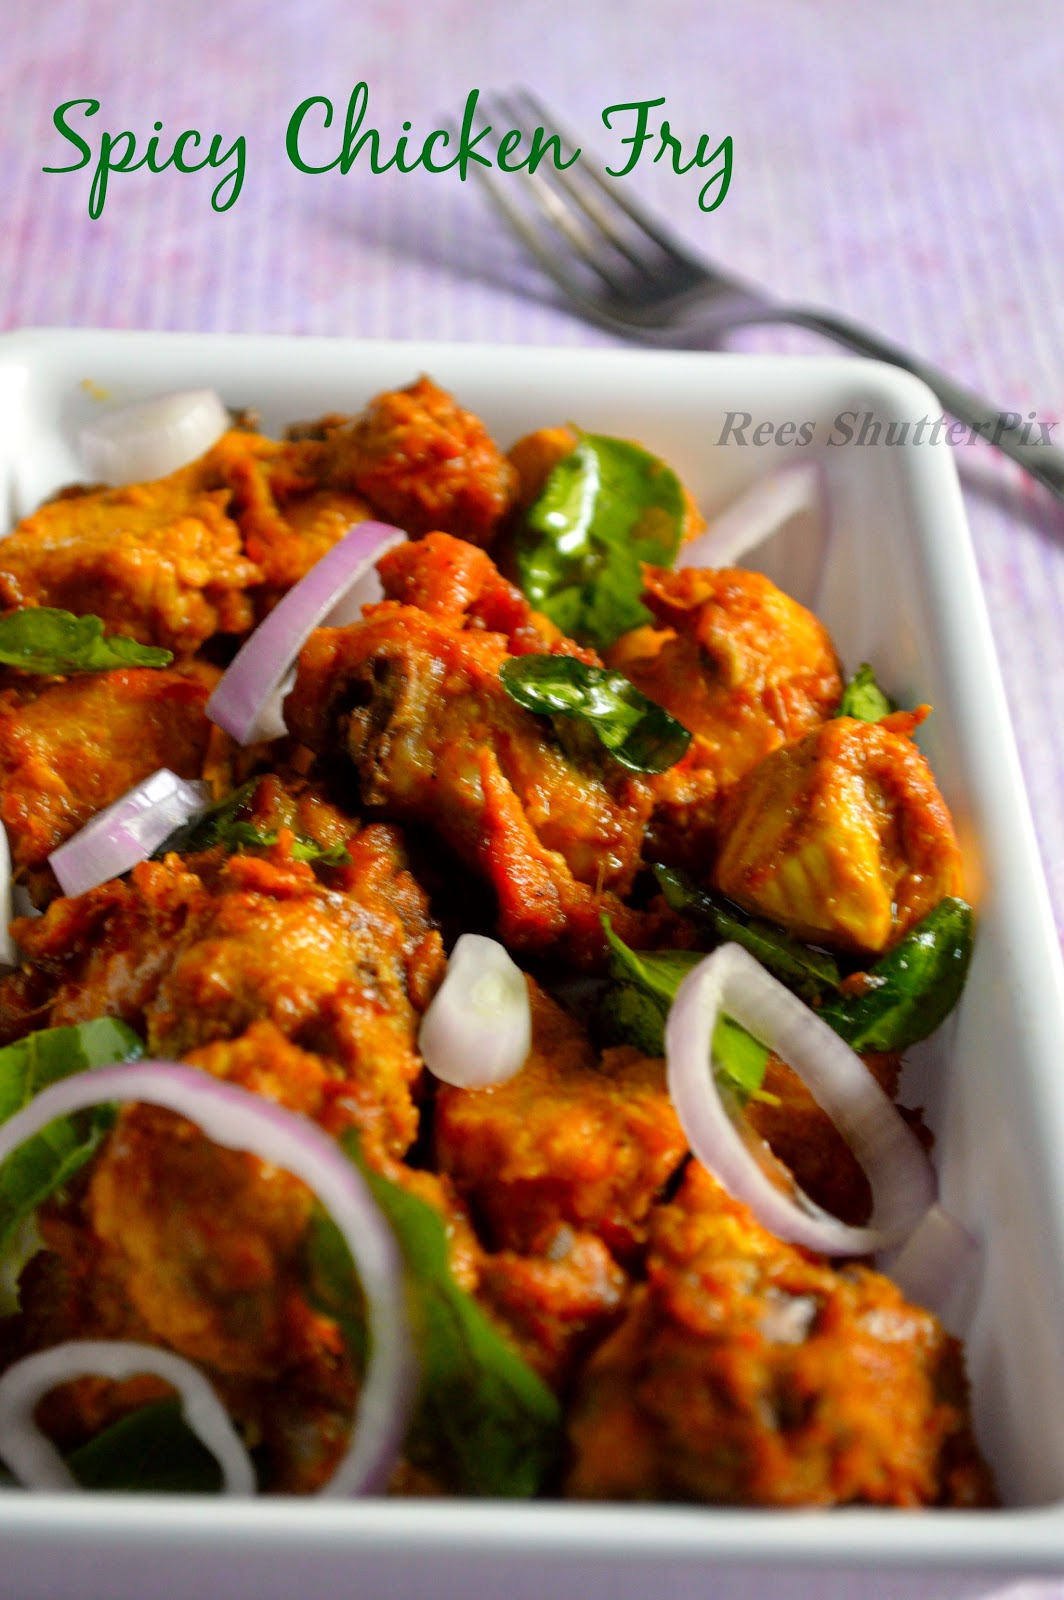 spicy chicken fry, recipe, chicken 65, lemon spicy chicken fry